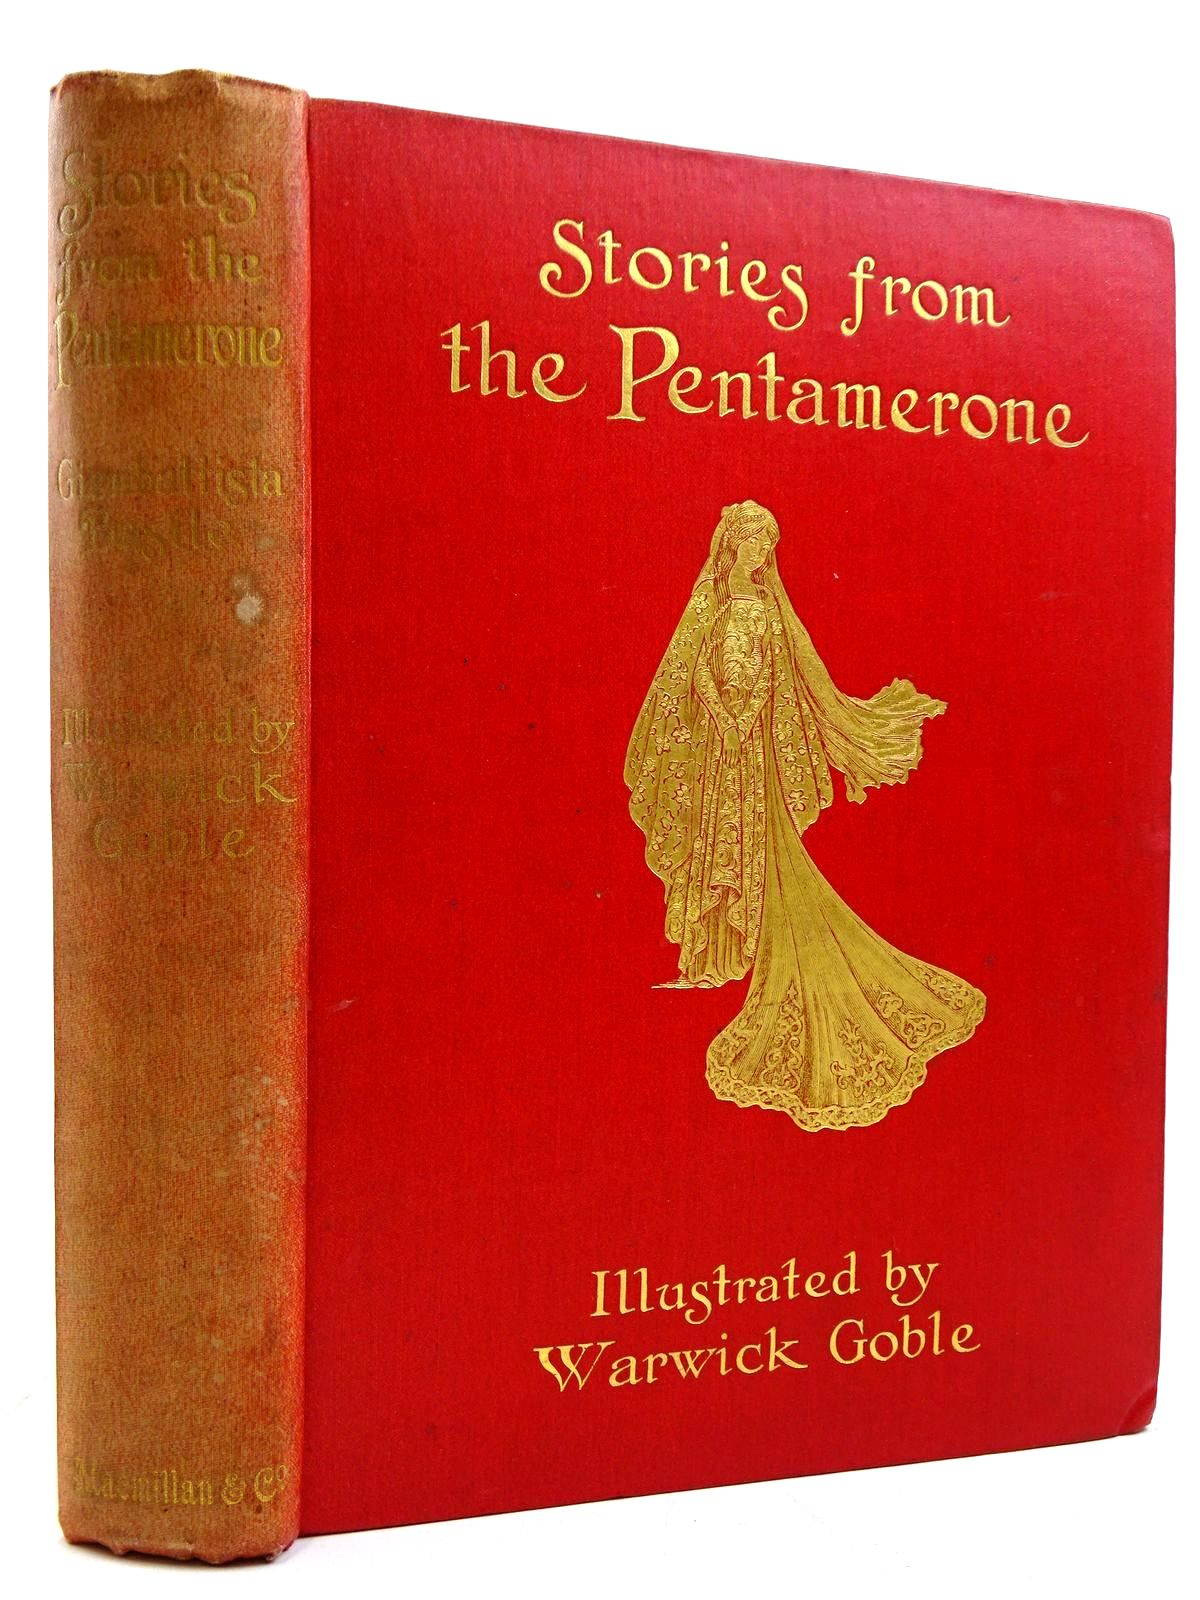 Photo of STORIES FROM THE PENTAMERONE written by Basile, Giambattista illustrated by Goble, Warwick published by Macmillan & Co. Ltd. (STOCK CODE: 2131325)  for sale by Stella & Rose's Books